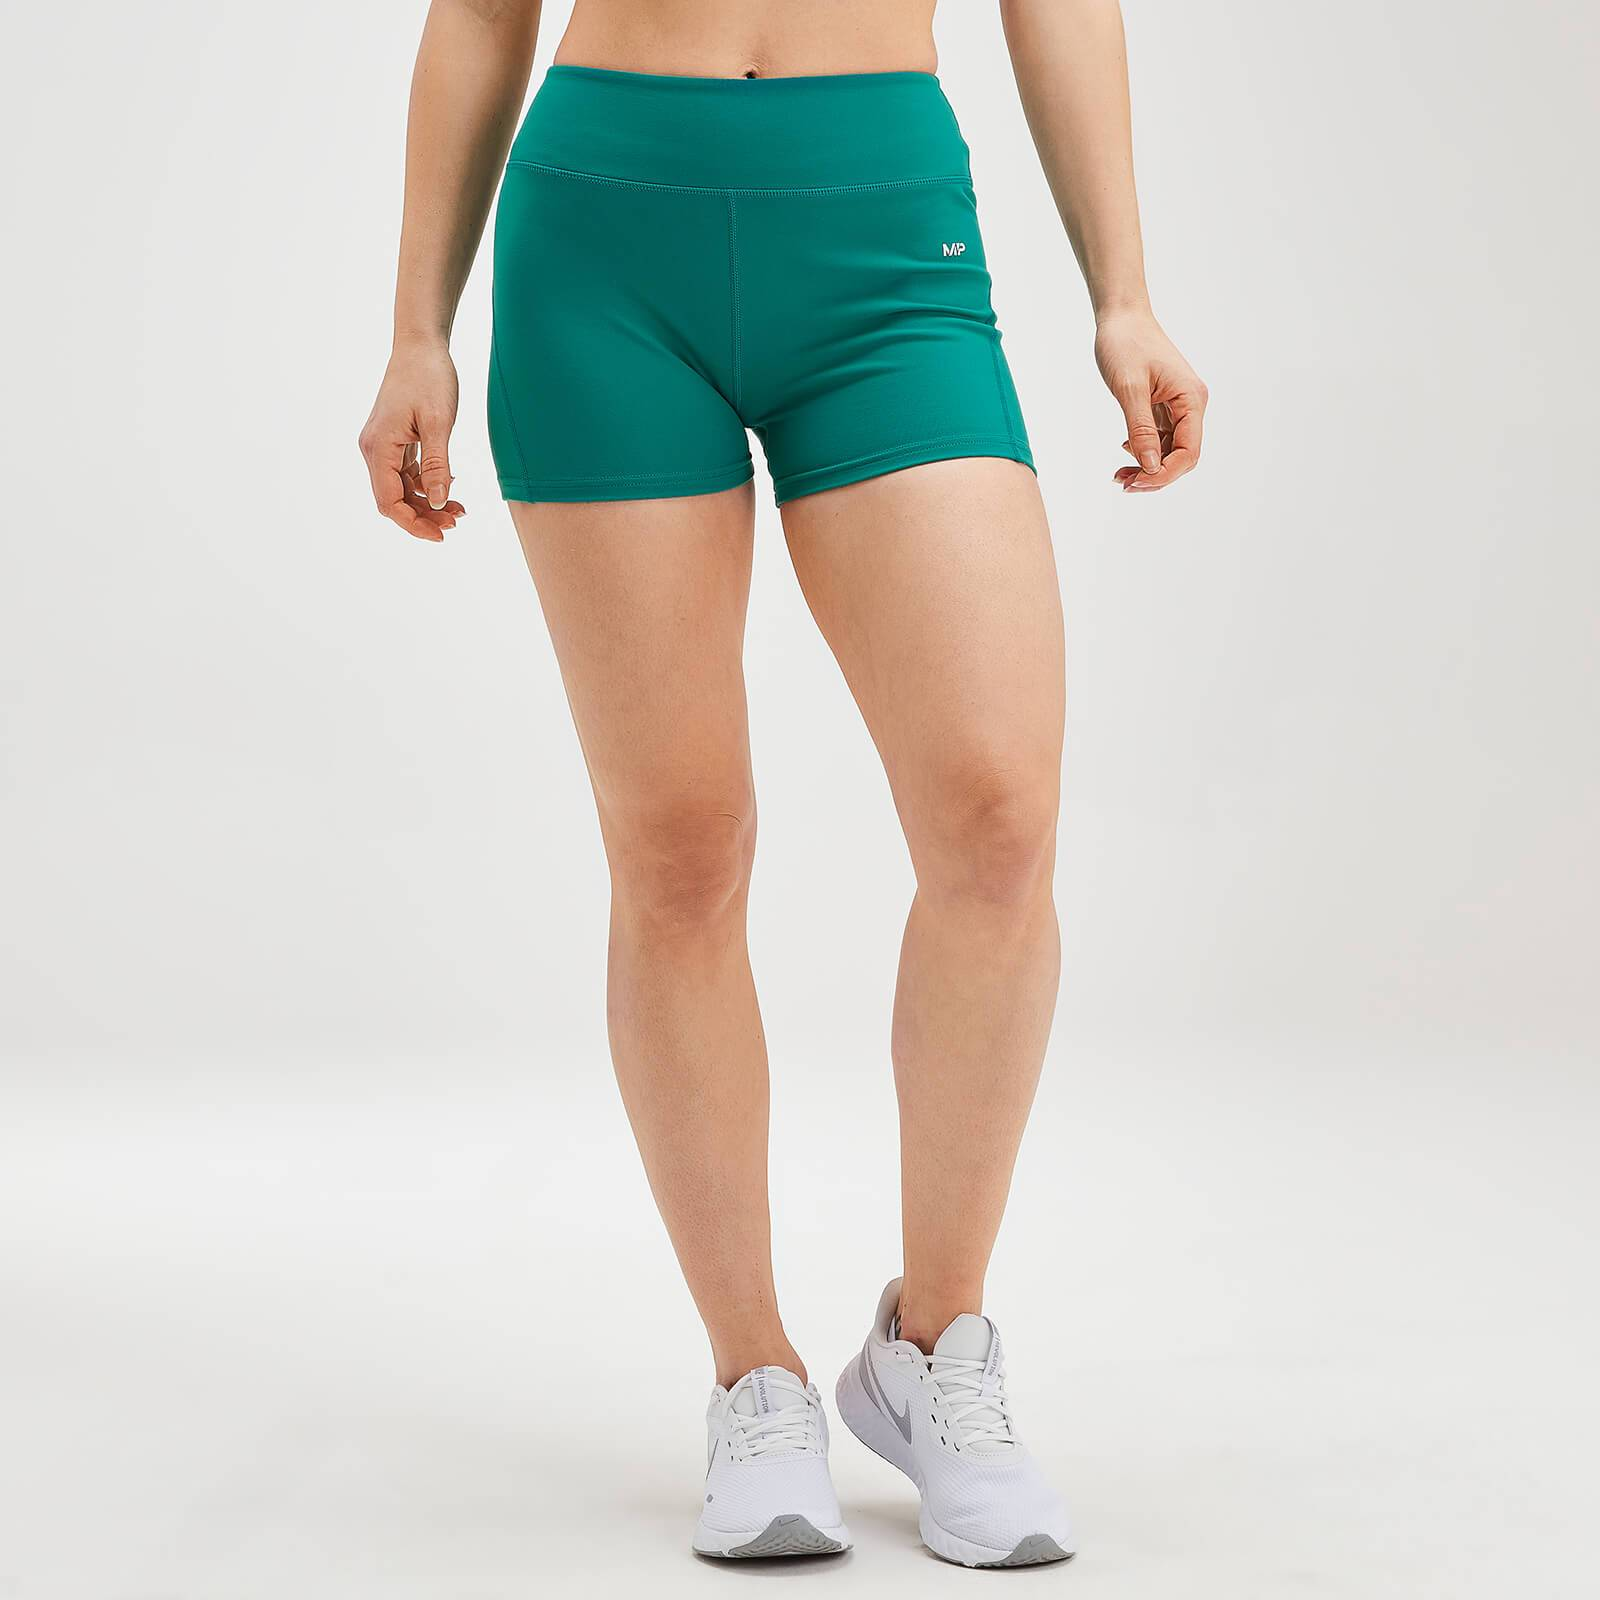 Mp Women's Power Shorts - Energy Green - XS